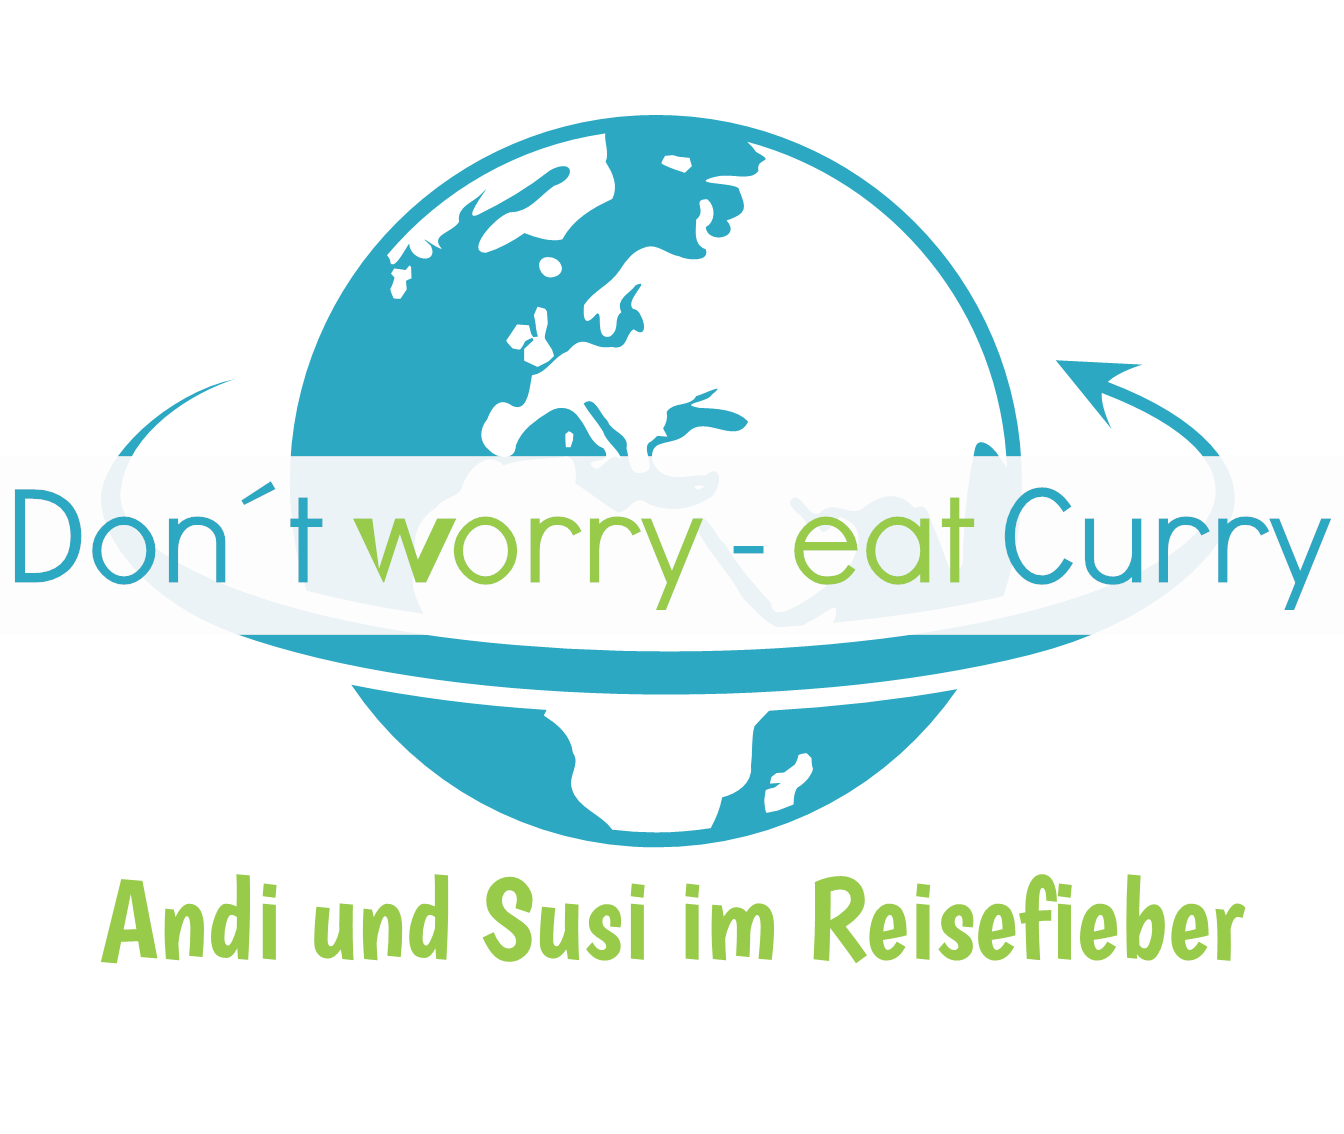 Dont worry – eat Curry